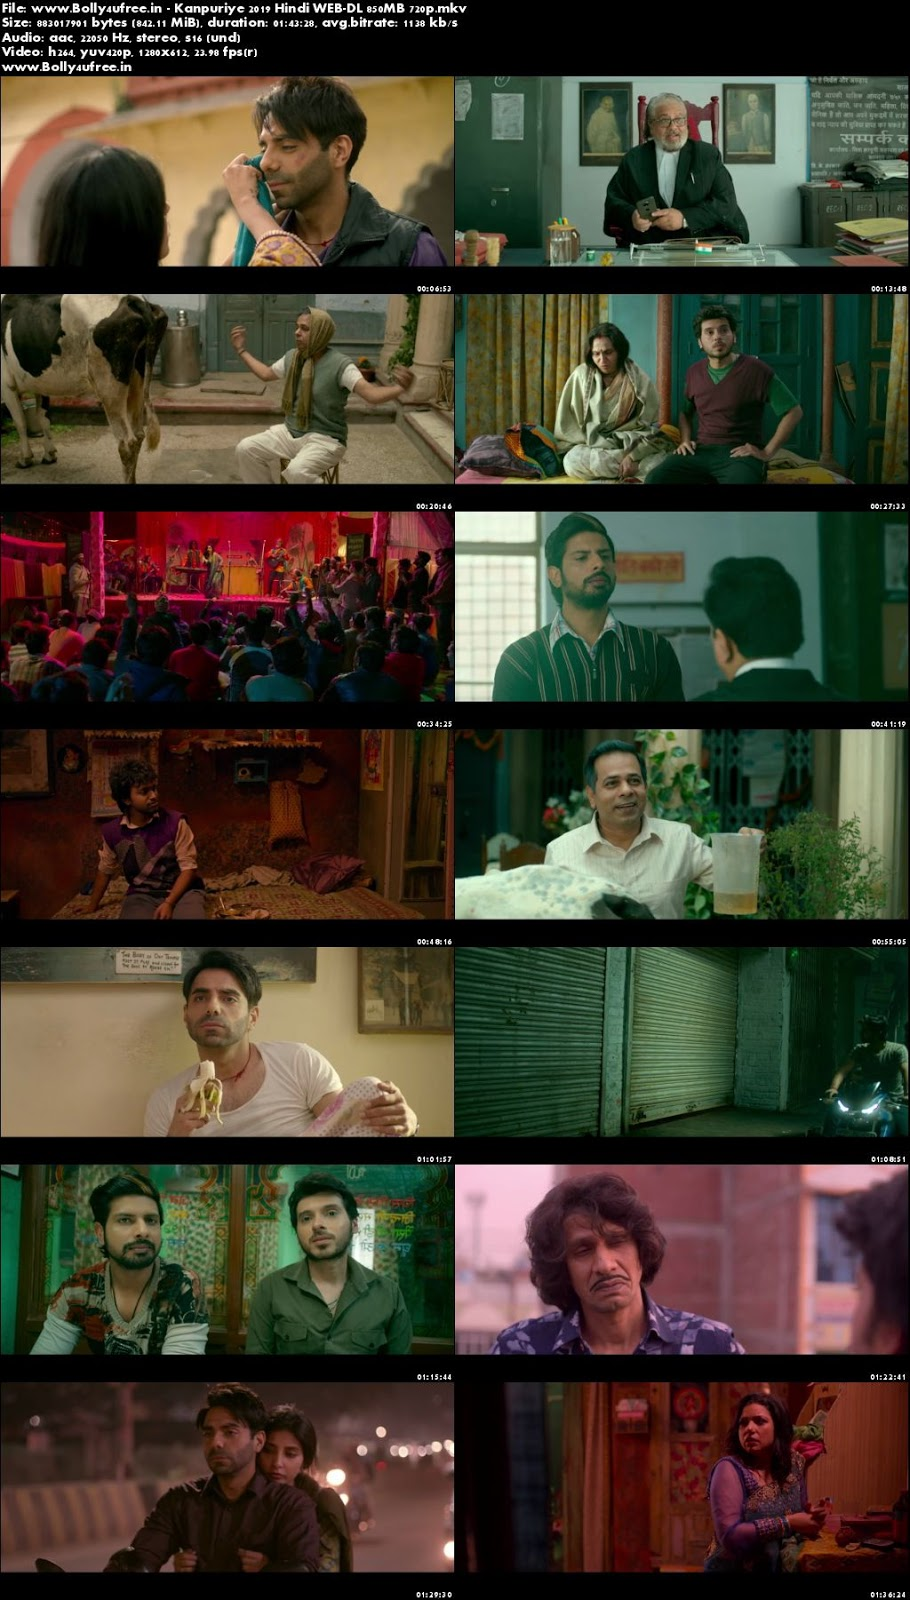 Kanpuriye 2019 Hindi Movie Download WEB-DL 850MB 720p